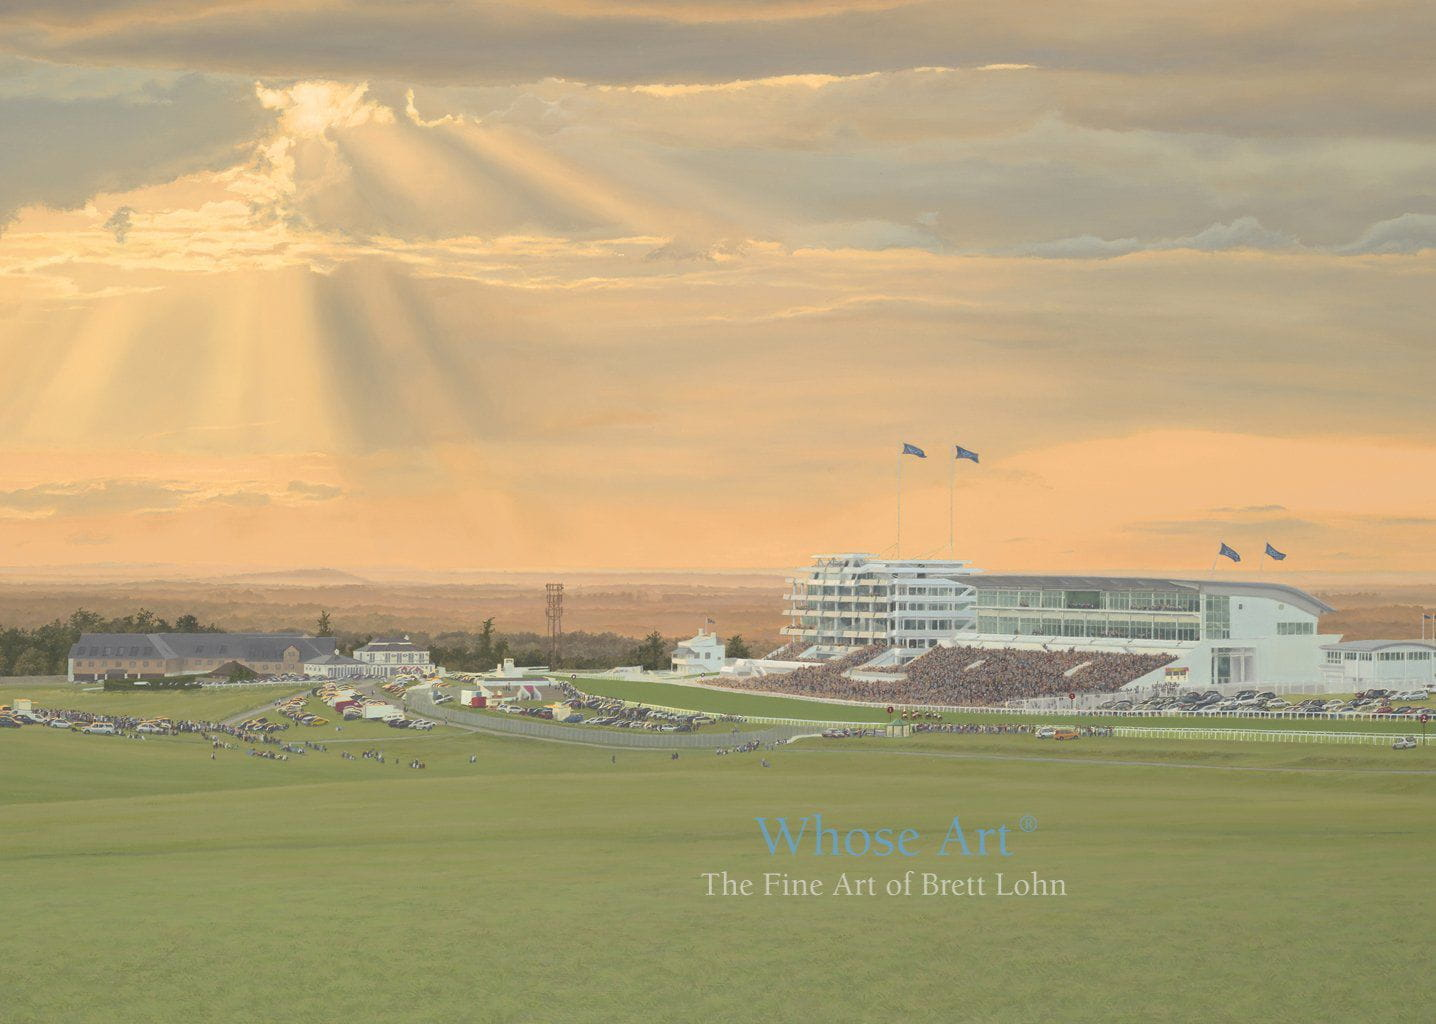 Epsom Derby greeting card of an oil painting of a race at Epsom Downs Racecourse beneath a stormy sunset sky with rays of sunlight. A dramatic greeting card.